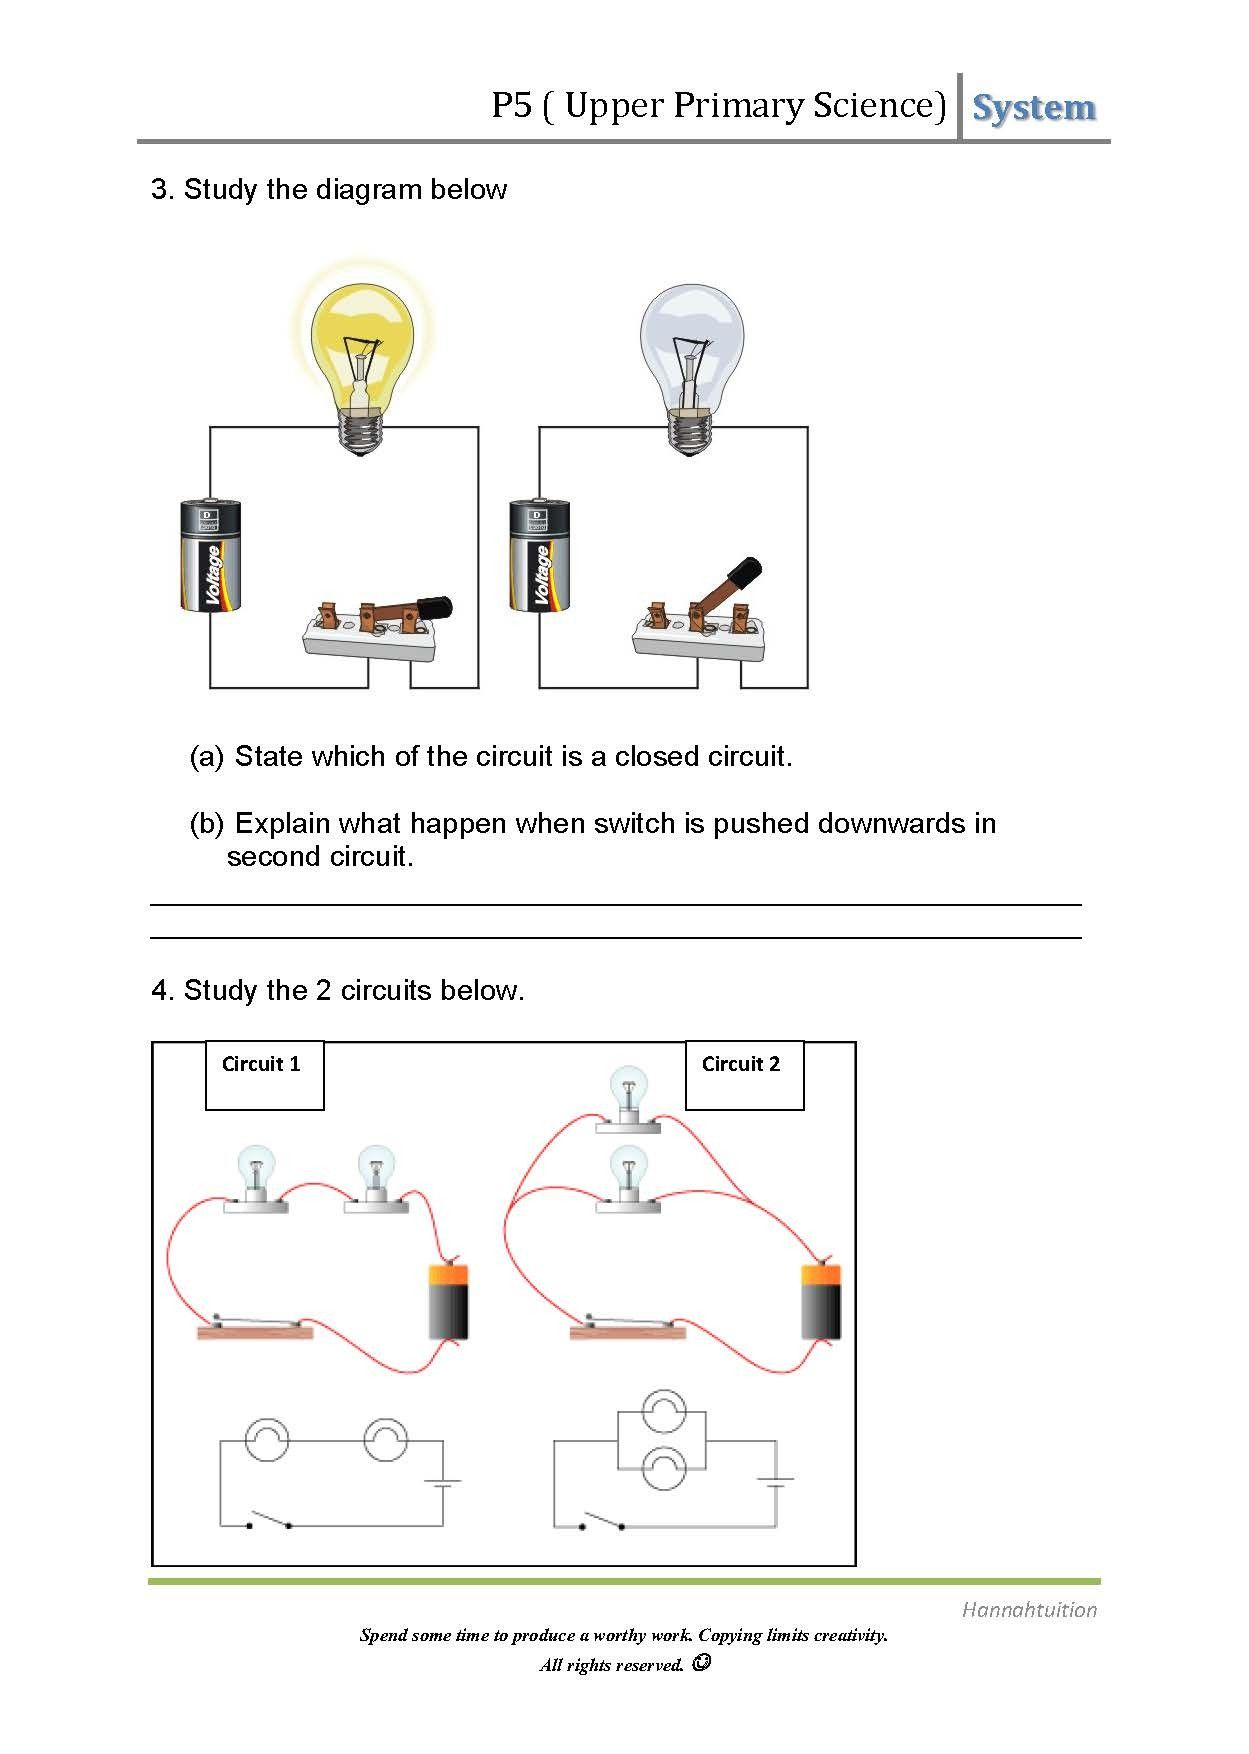 Beautiful Wiring Diagram Worksheet Diagrams Digramssample Diagramimages Wiringdiagramsample Wirin Electricity Lessons Worksheets For Kids Electric Circuit